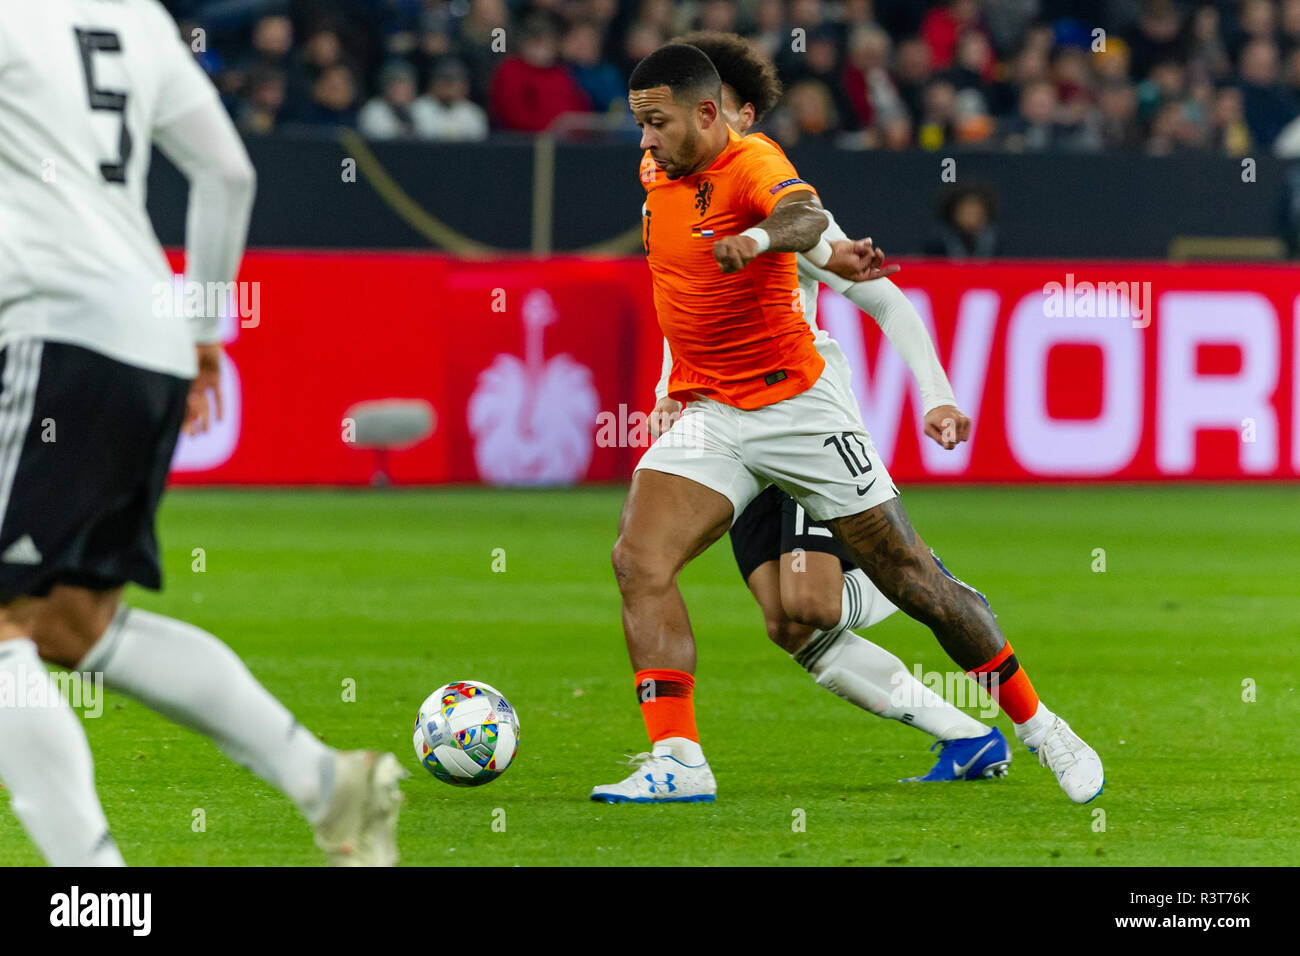 Gelsenkirchen, Germany 18 November 2018 UEFA Nations League Germany - The Netherlands    Memphis Depay (Netherlands) - Stock Image